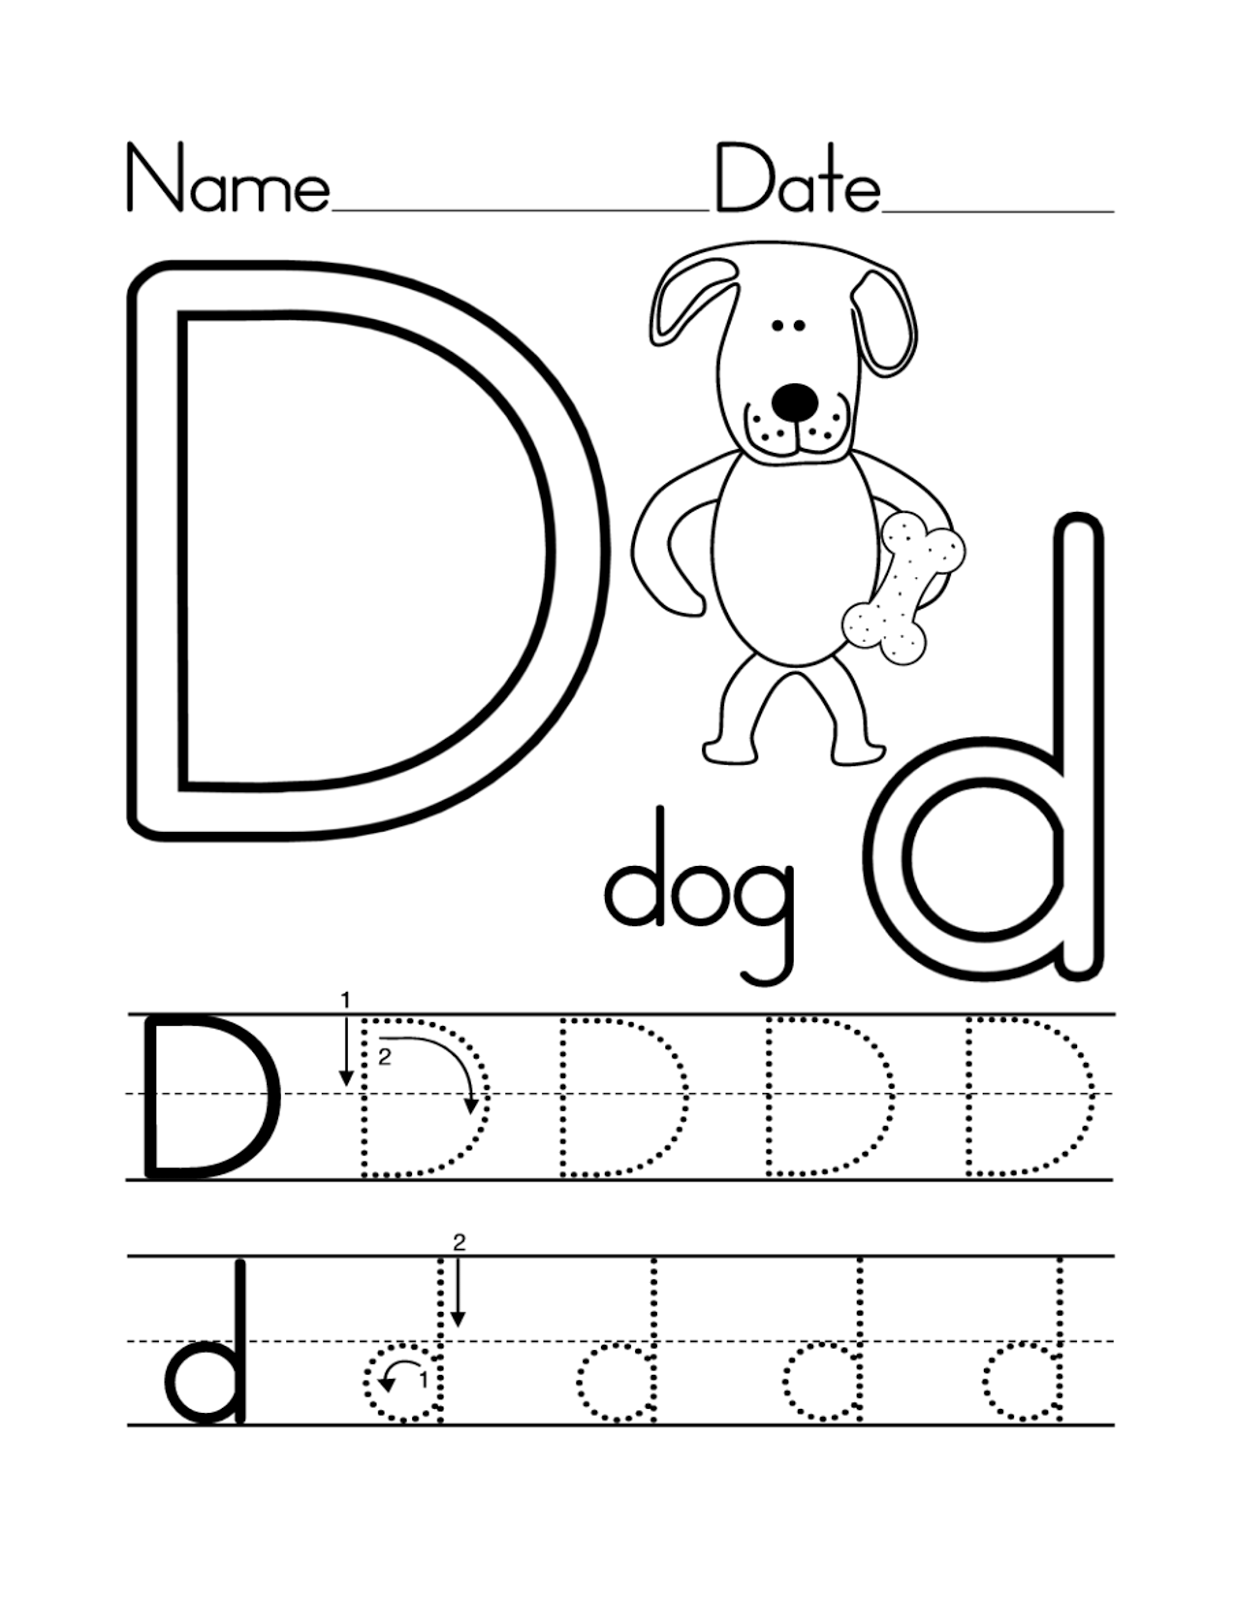 English Alphabet Worksheet In